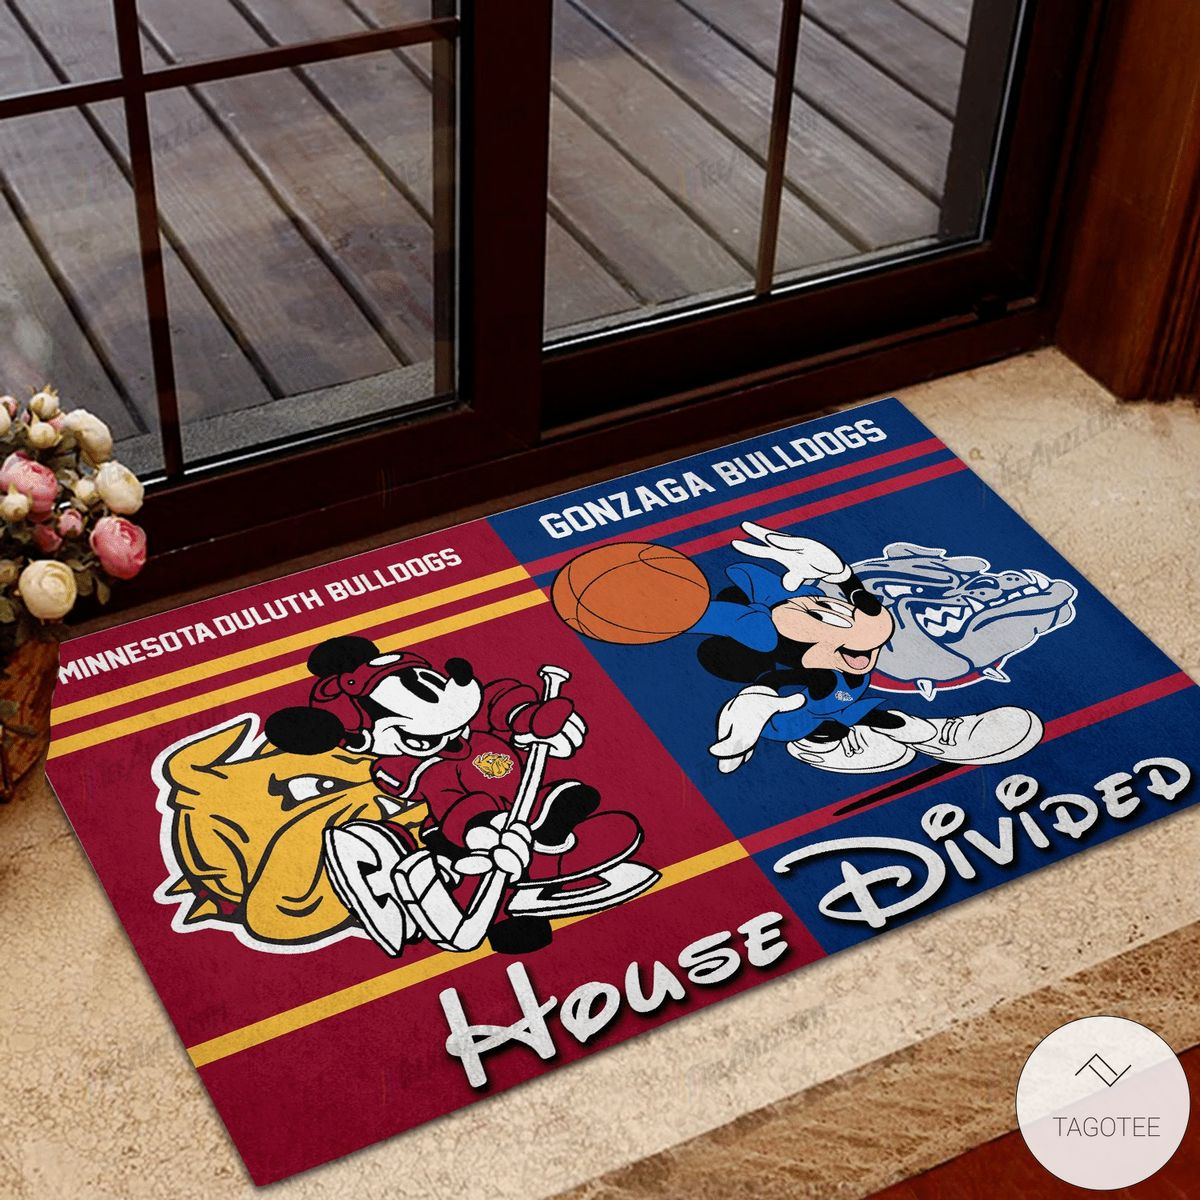 Minnesota Duluth Bulldogs House Divided Gonzaga Bulldogs Mickey Mouse And Minnie Mouse Doormat